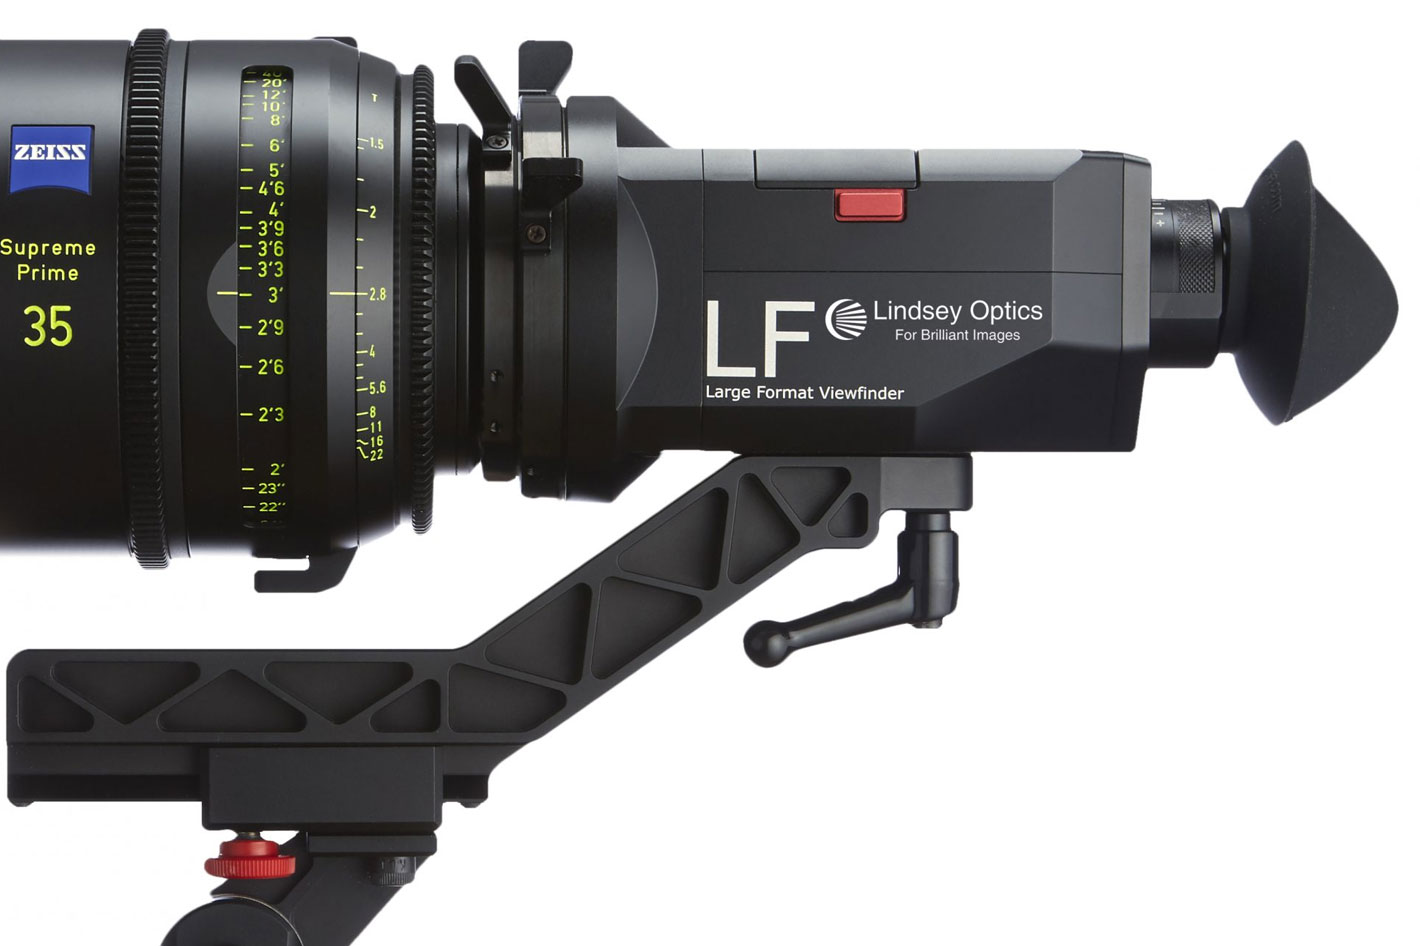 Lindsey Optics: the Large Format Viewfinder for Super 35 and beyond